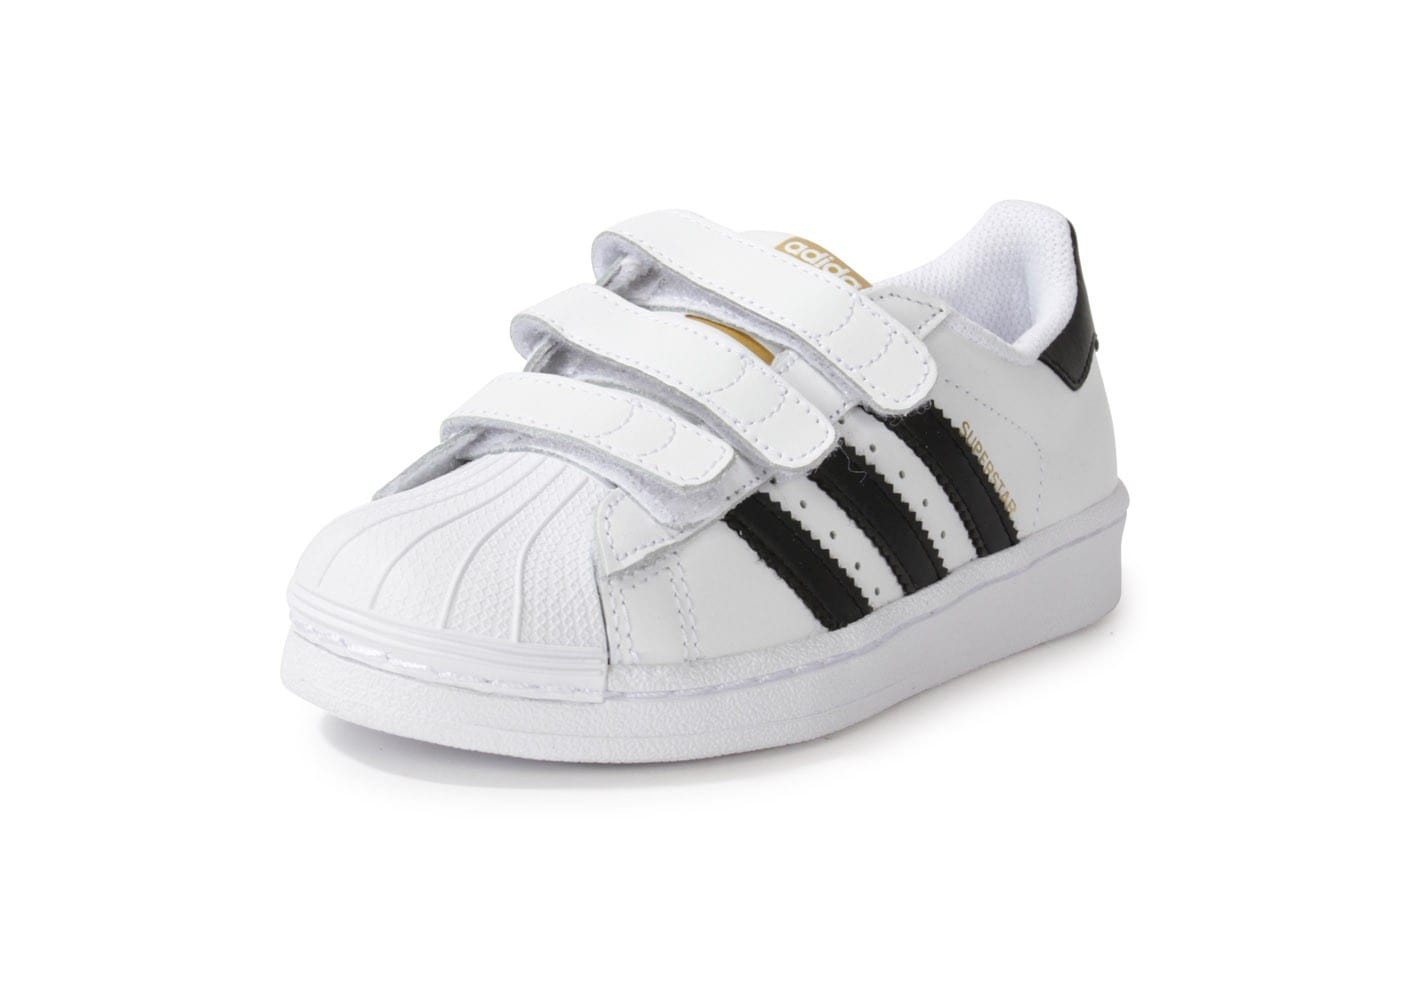 adidas superstar foundation enfant blanche chaussures adidas chausport. Black Bedroom Furniture Sets. Home Design Ideas